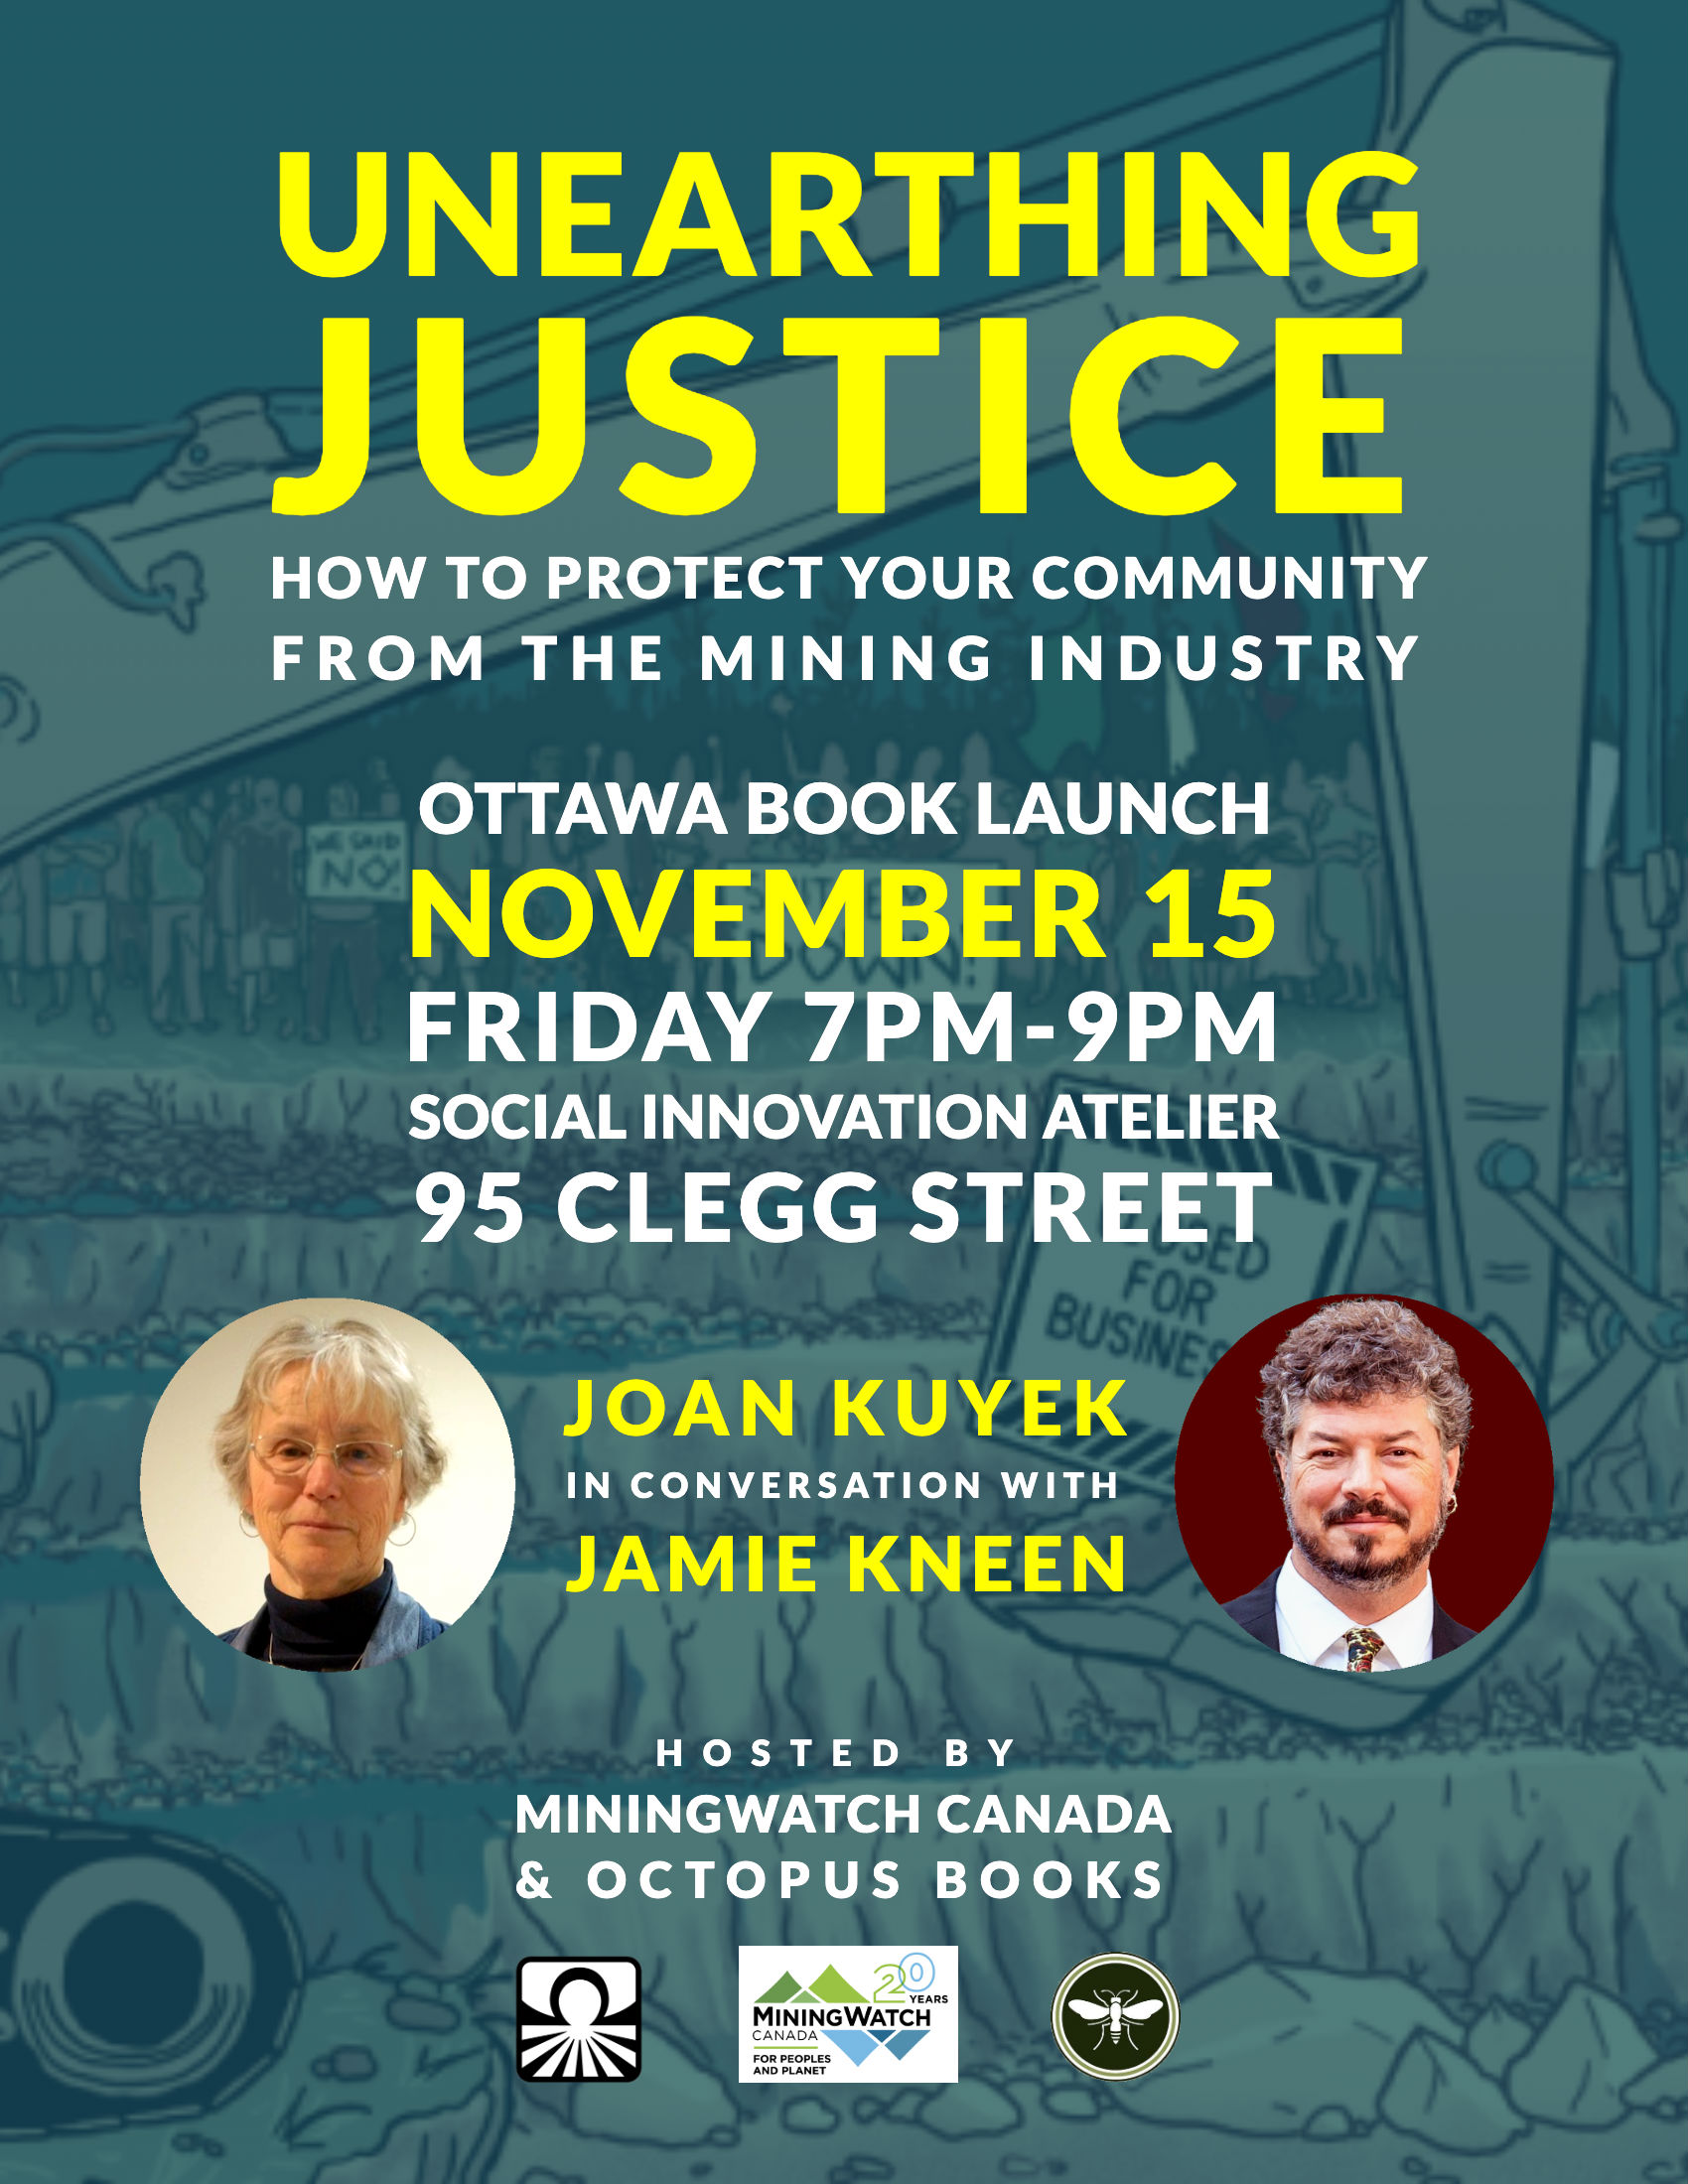 """""""Unearthing Justice"""" Ottawa book launch poster"""